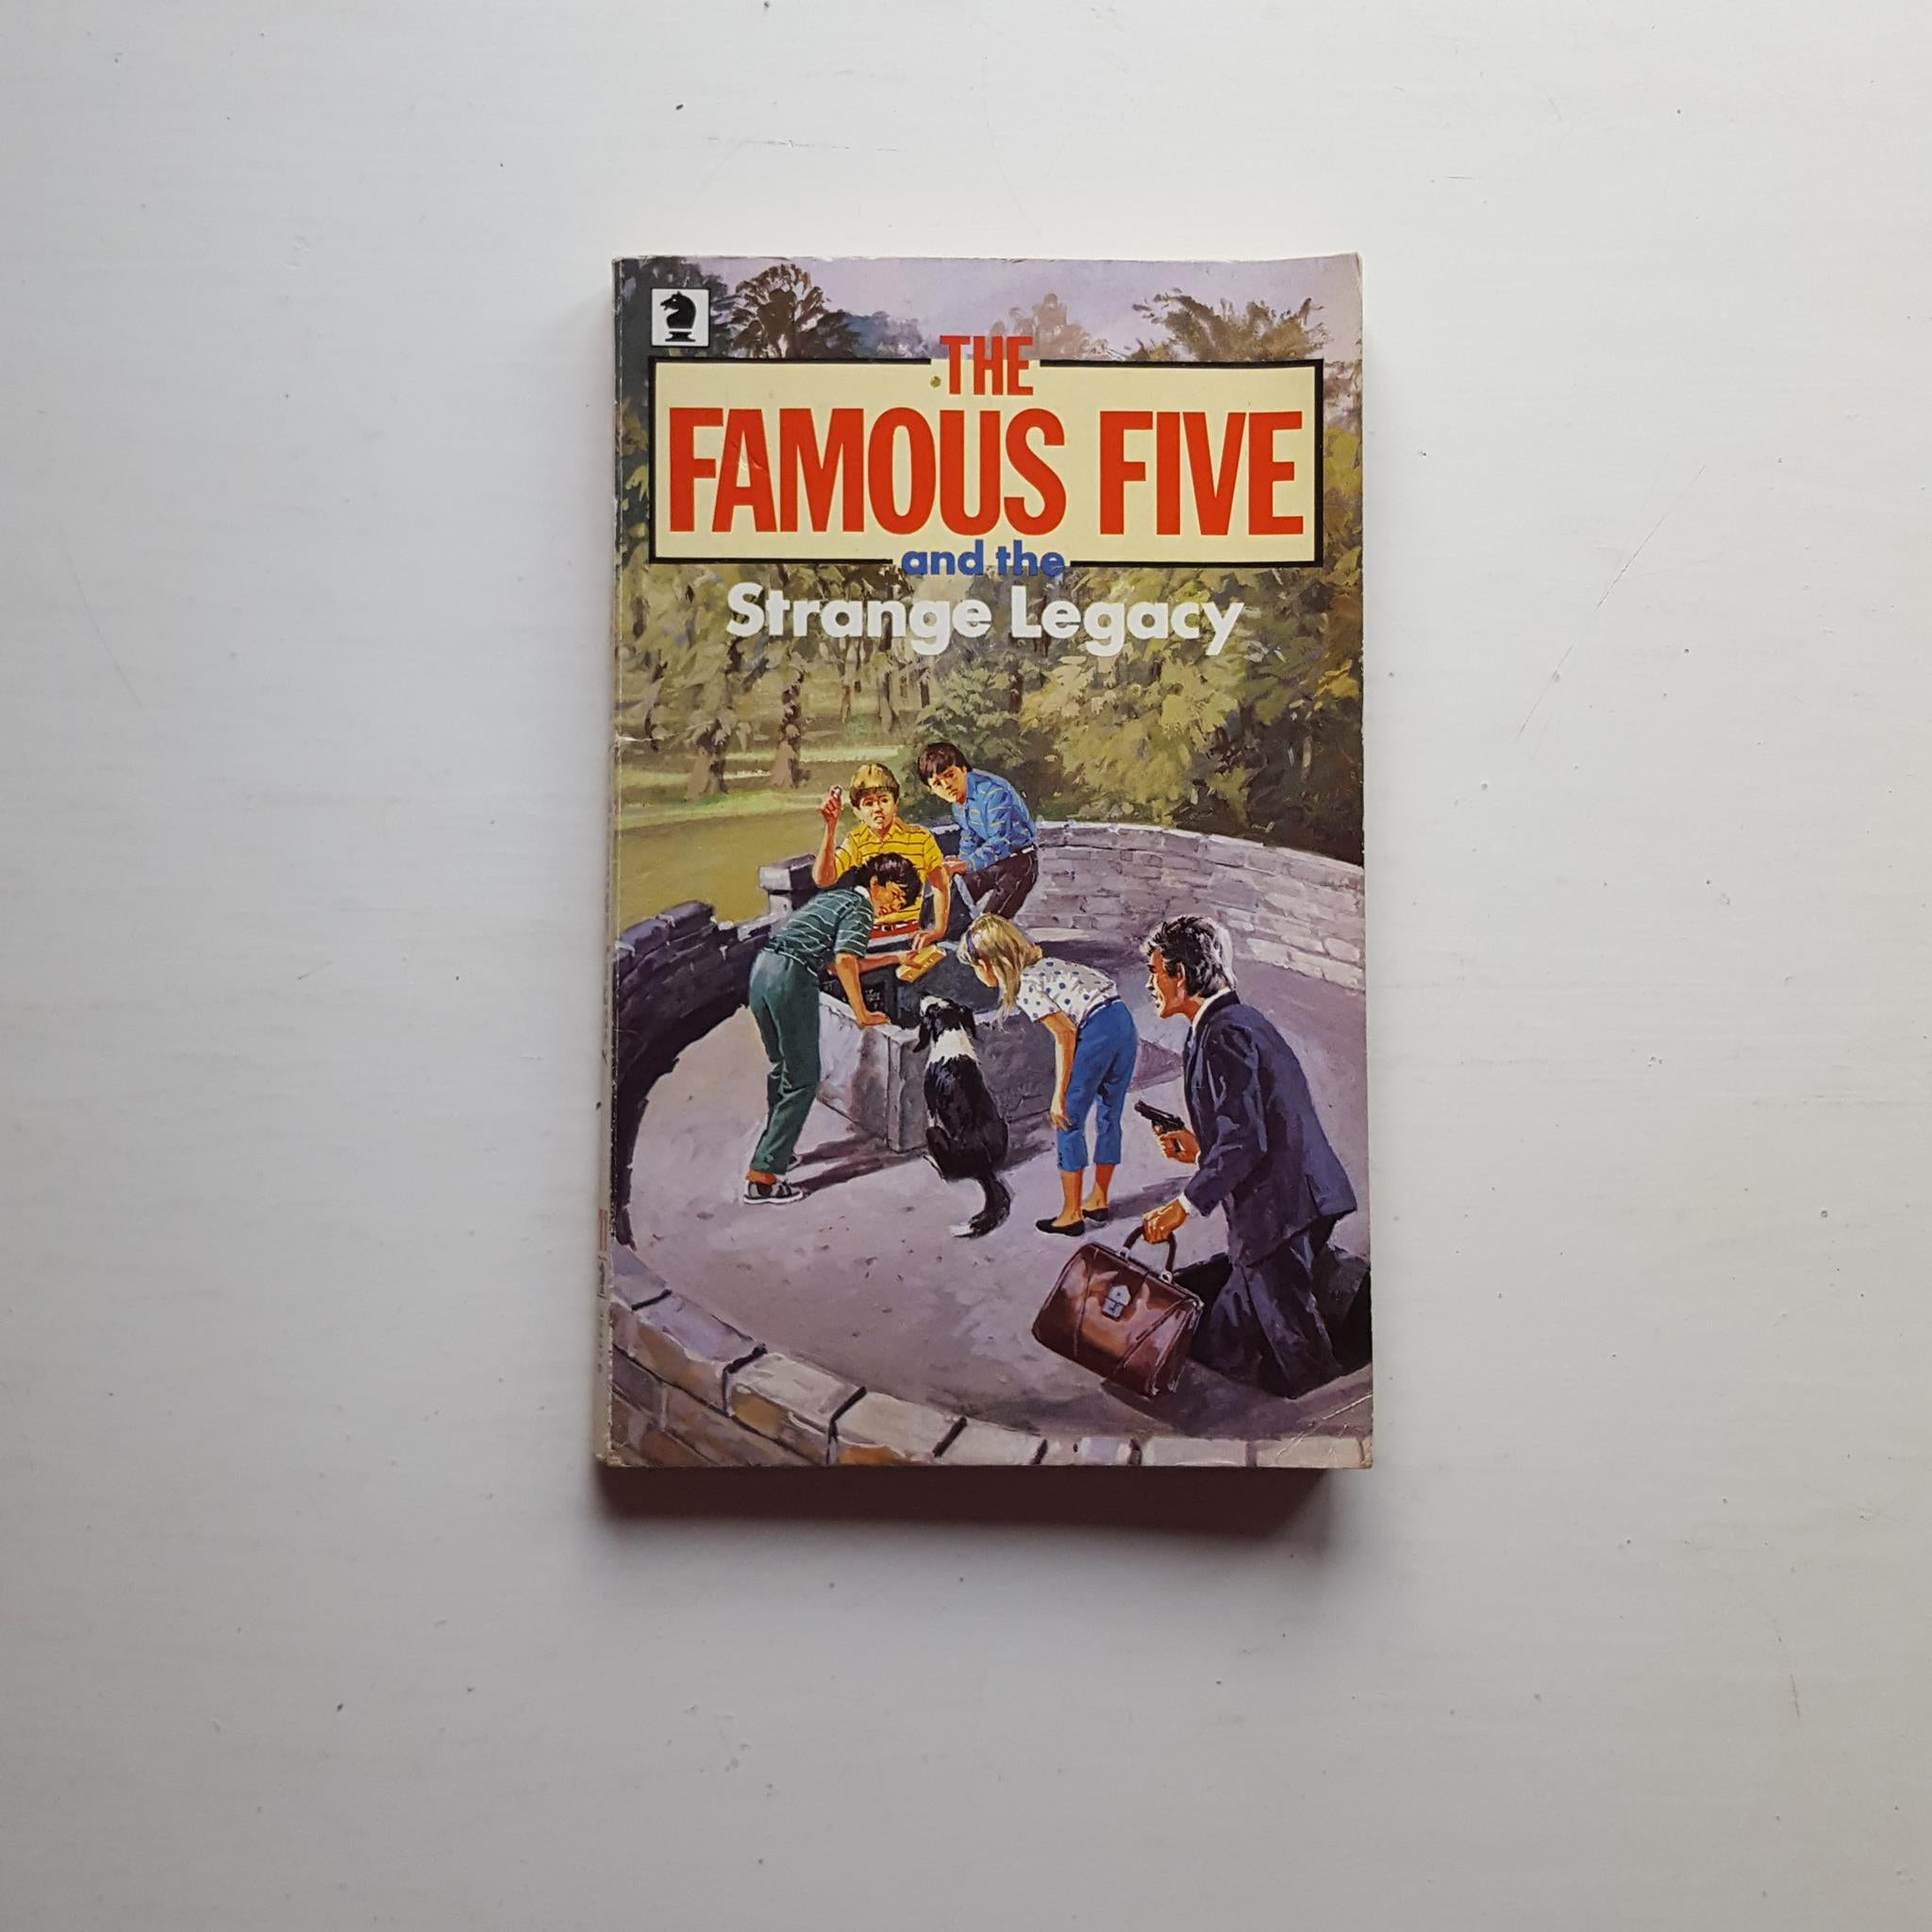 The Famous Five and the Strange Legacy by Enid Blyton